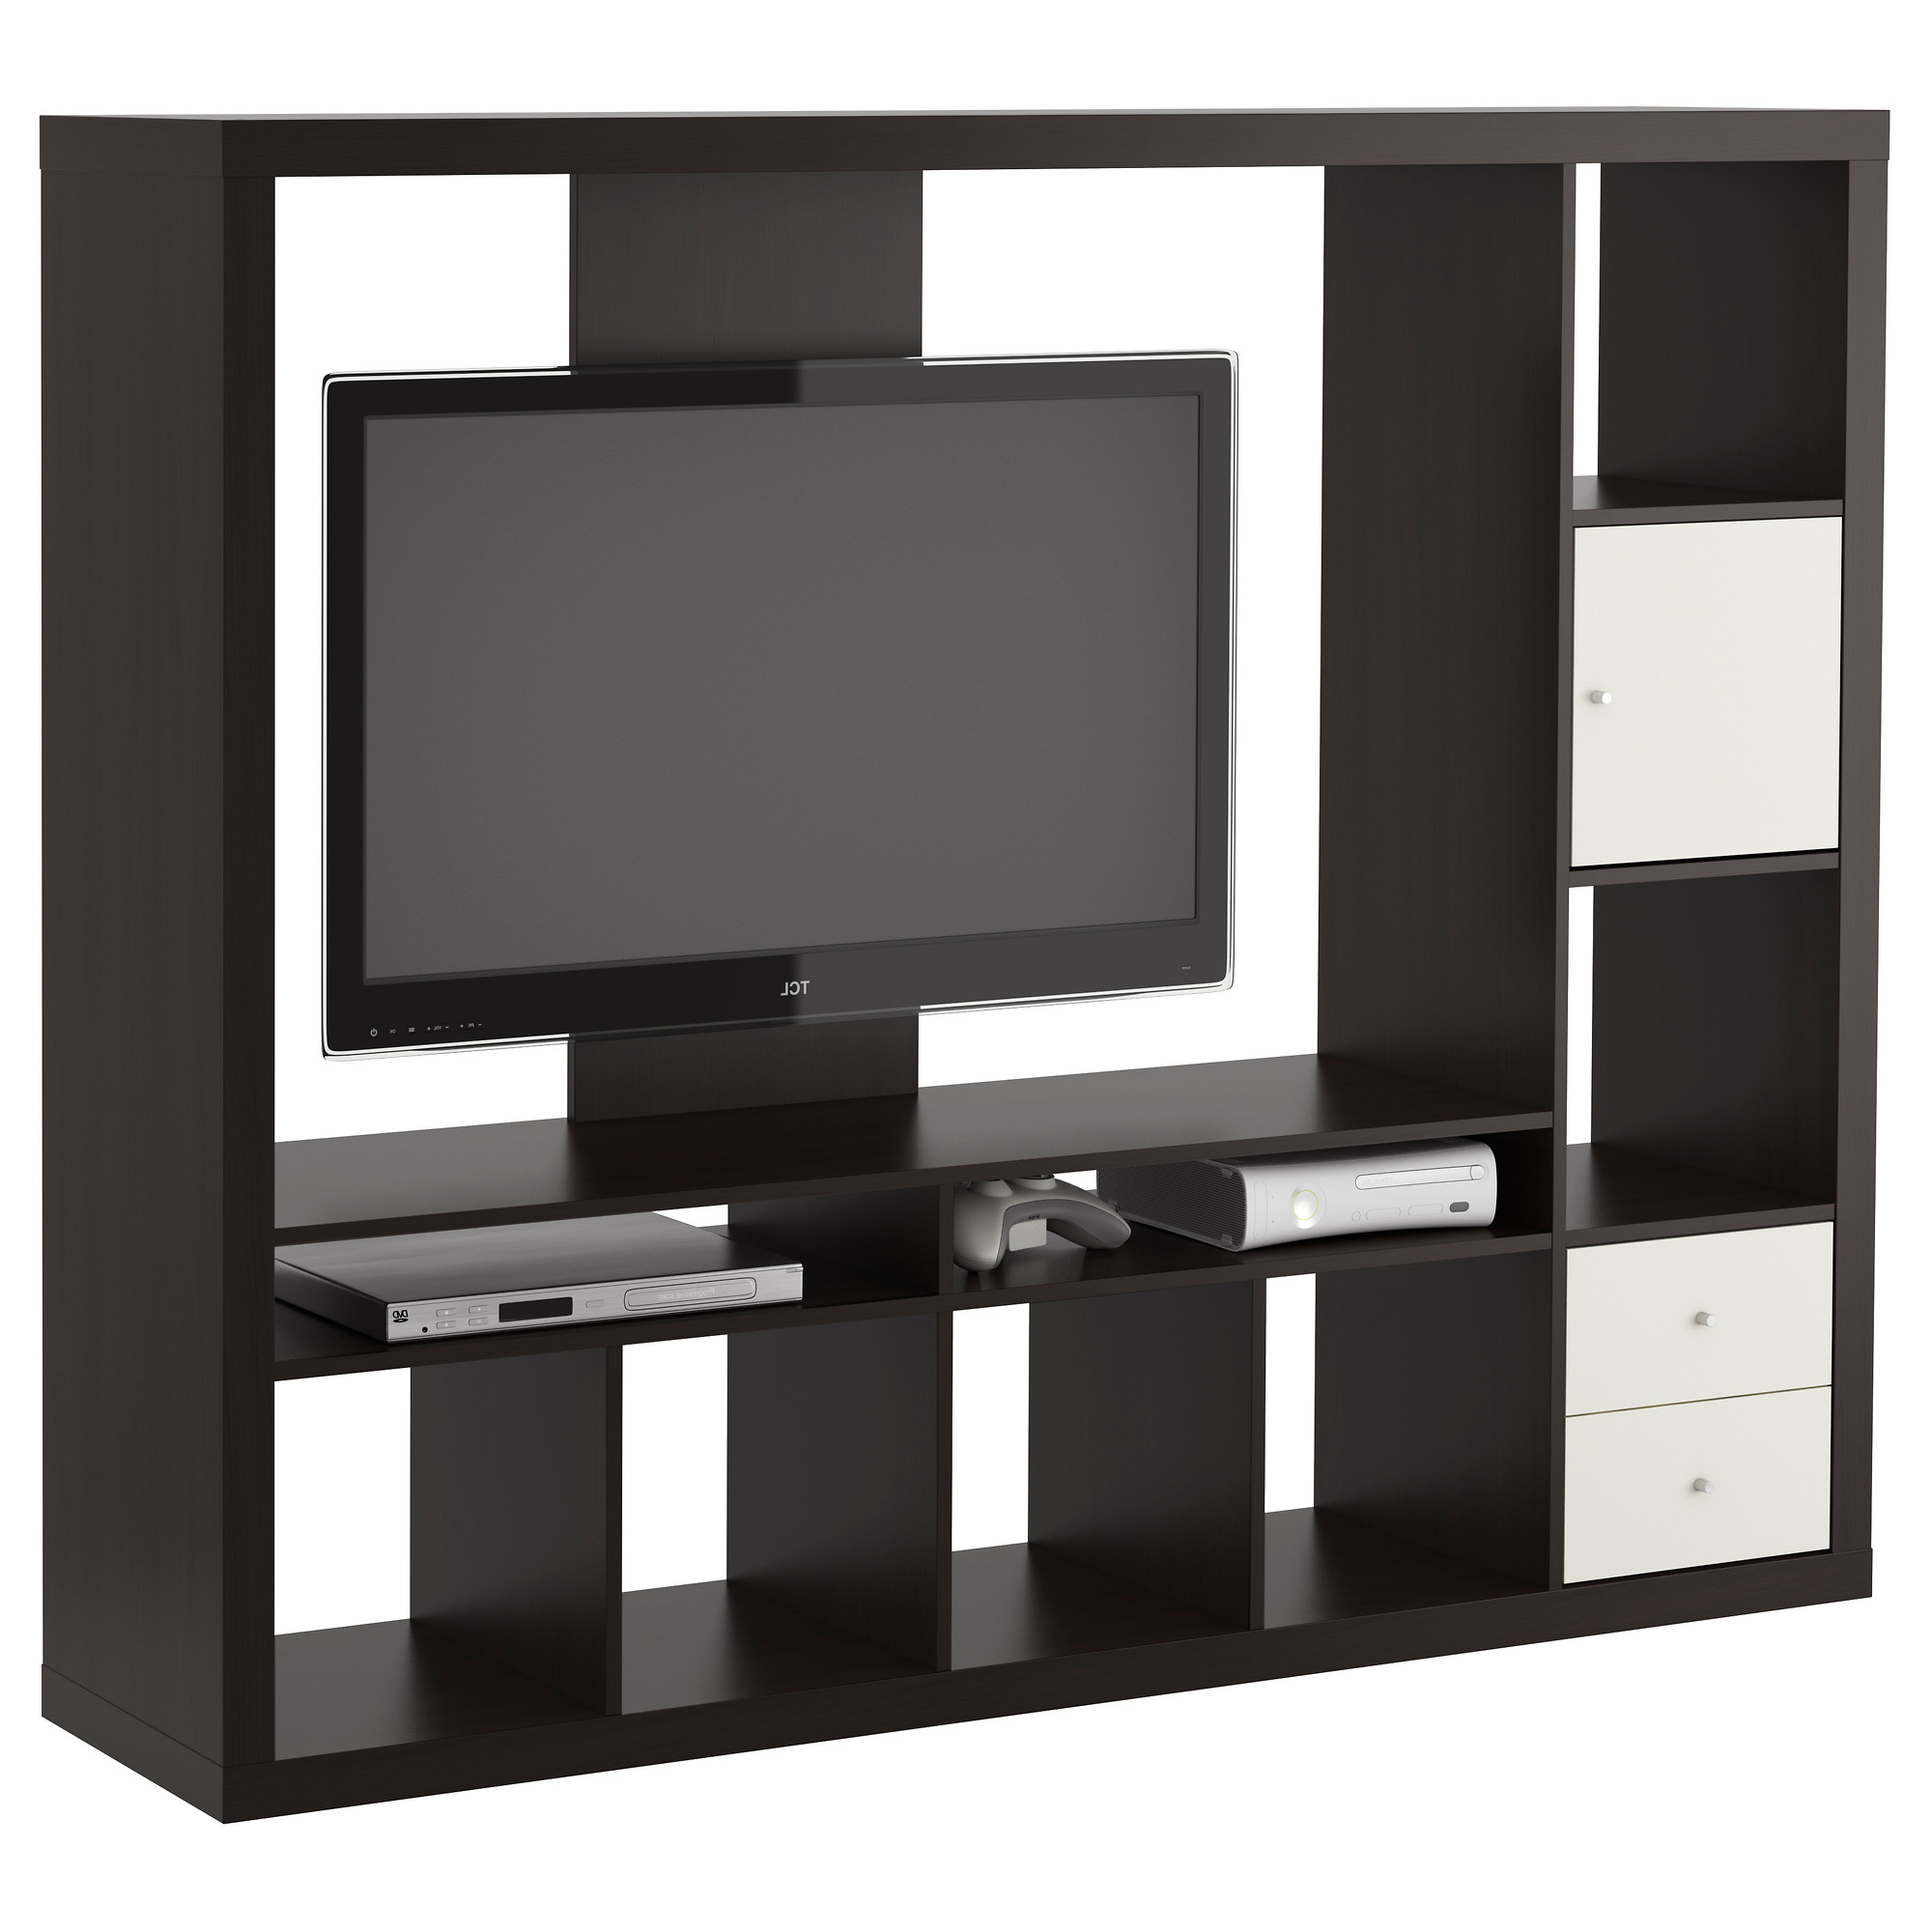 Very Cheap Tv Units Throughout Well Known Tv Stand Target Tall Cheap Corner For 55 Inch Ikea Hemnes Small (View 9 of 20)